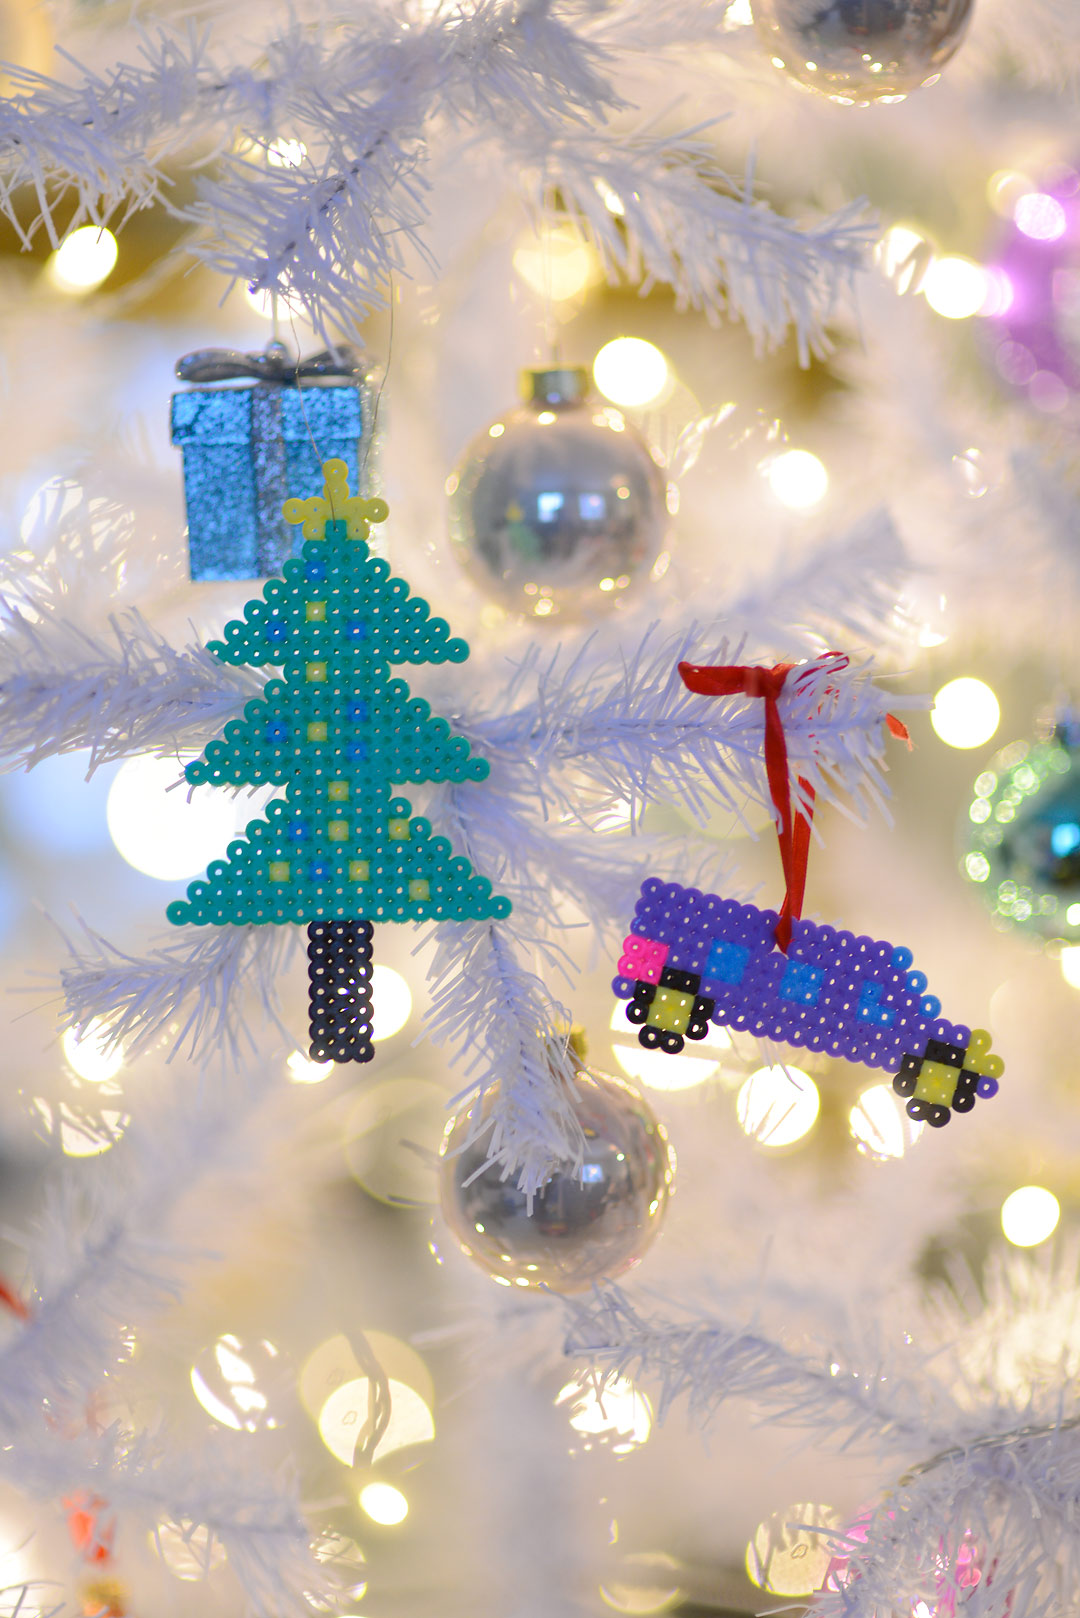 DIY with kids: Hama beads Christmas ornaments